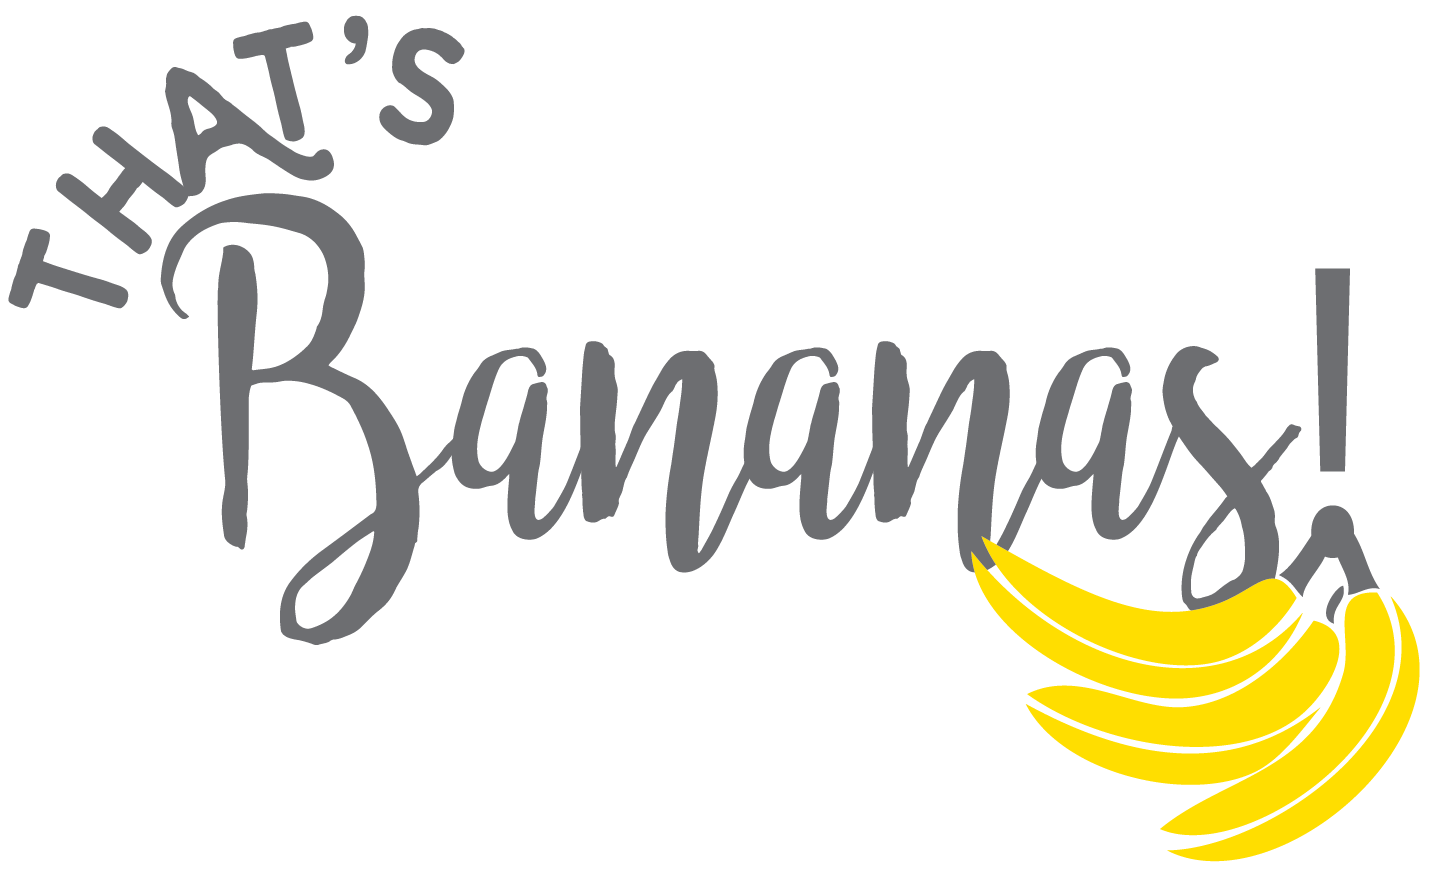 That's Bananas! LOGO-01.png